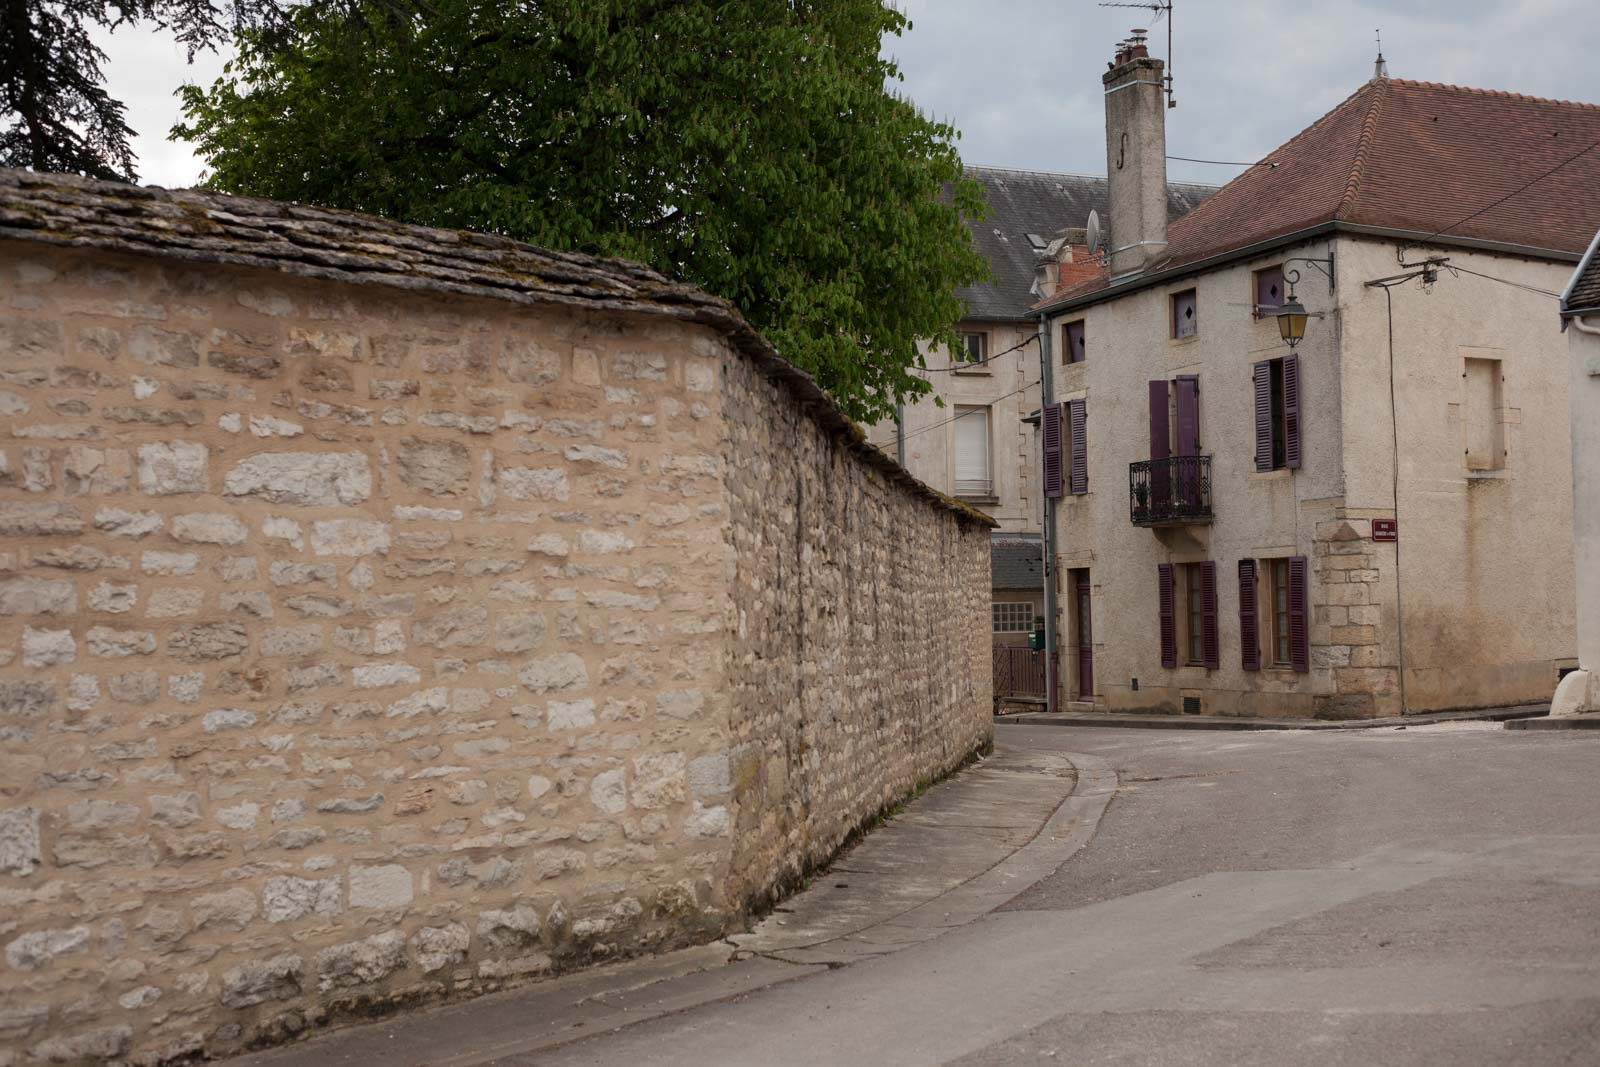 Vosne-Romanée is a rather unassuming village when you walk its quiet streets, but its impact on the world of wine is enormous. ©Kevin Day/Opening a Bottle